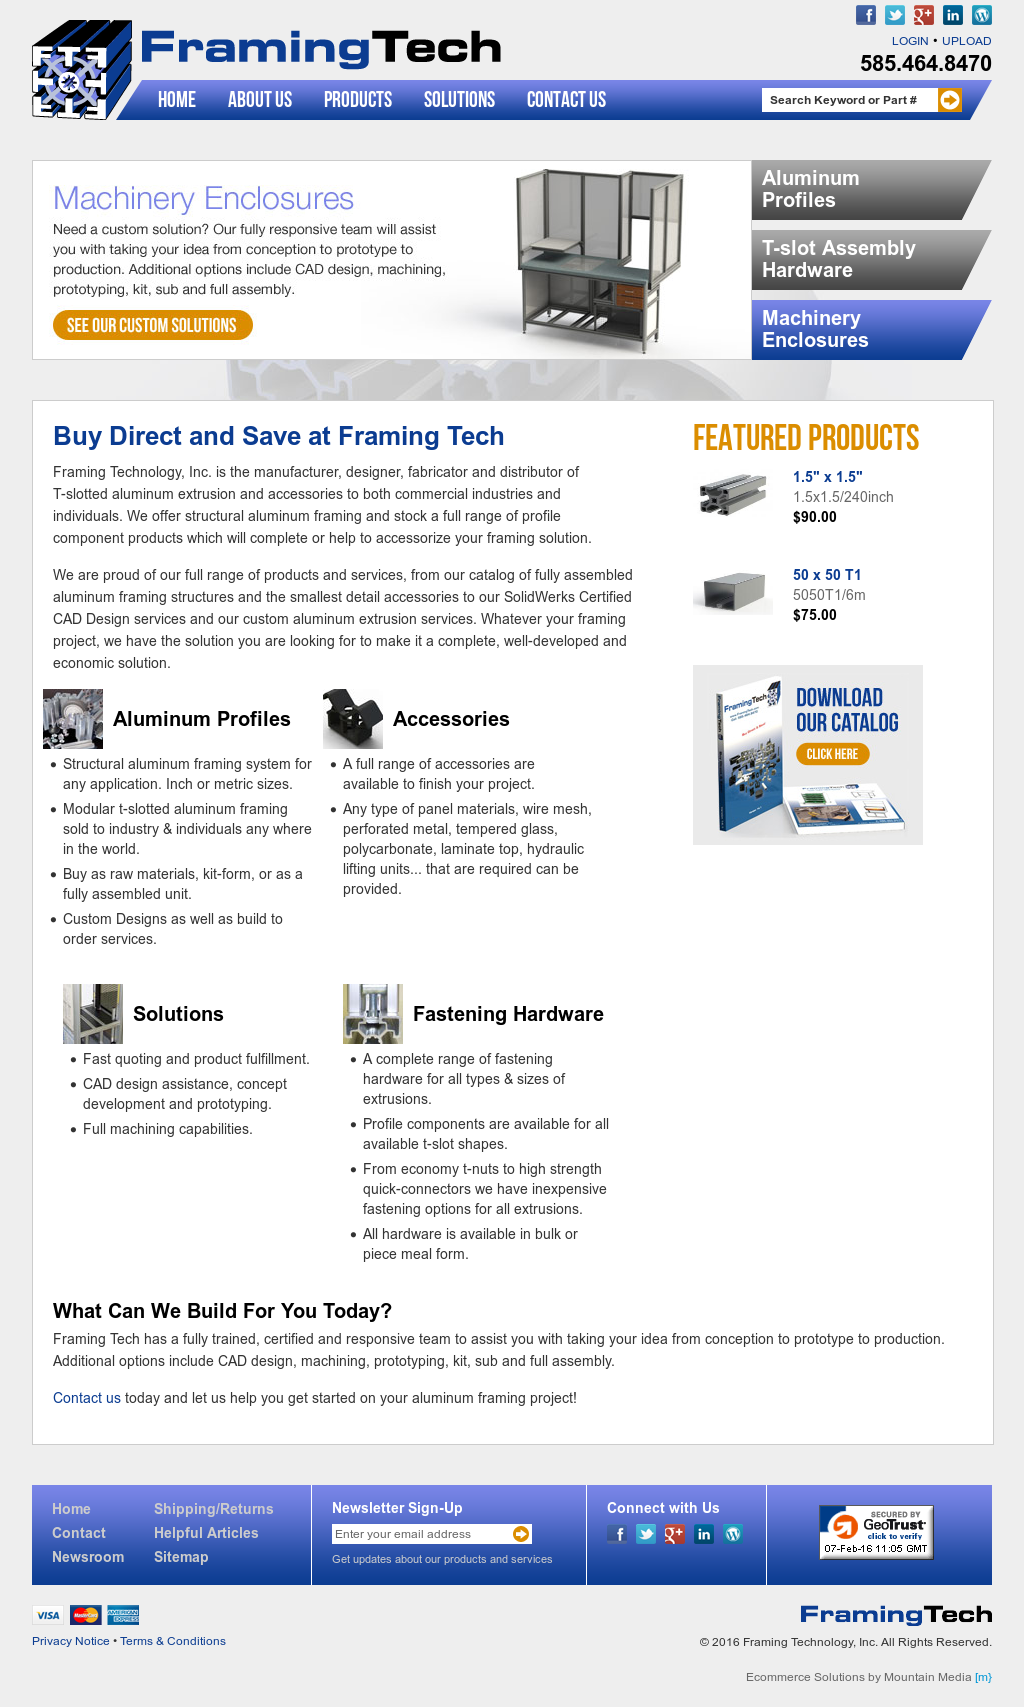 Framing Tech Competitors, Revenue and Employees - Owler Company Profile